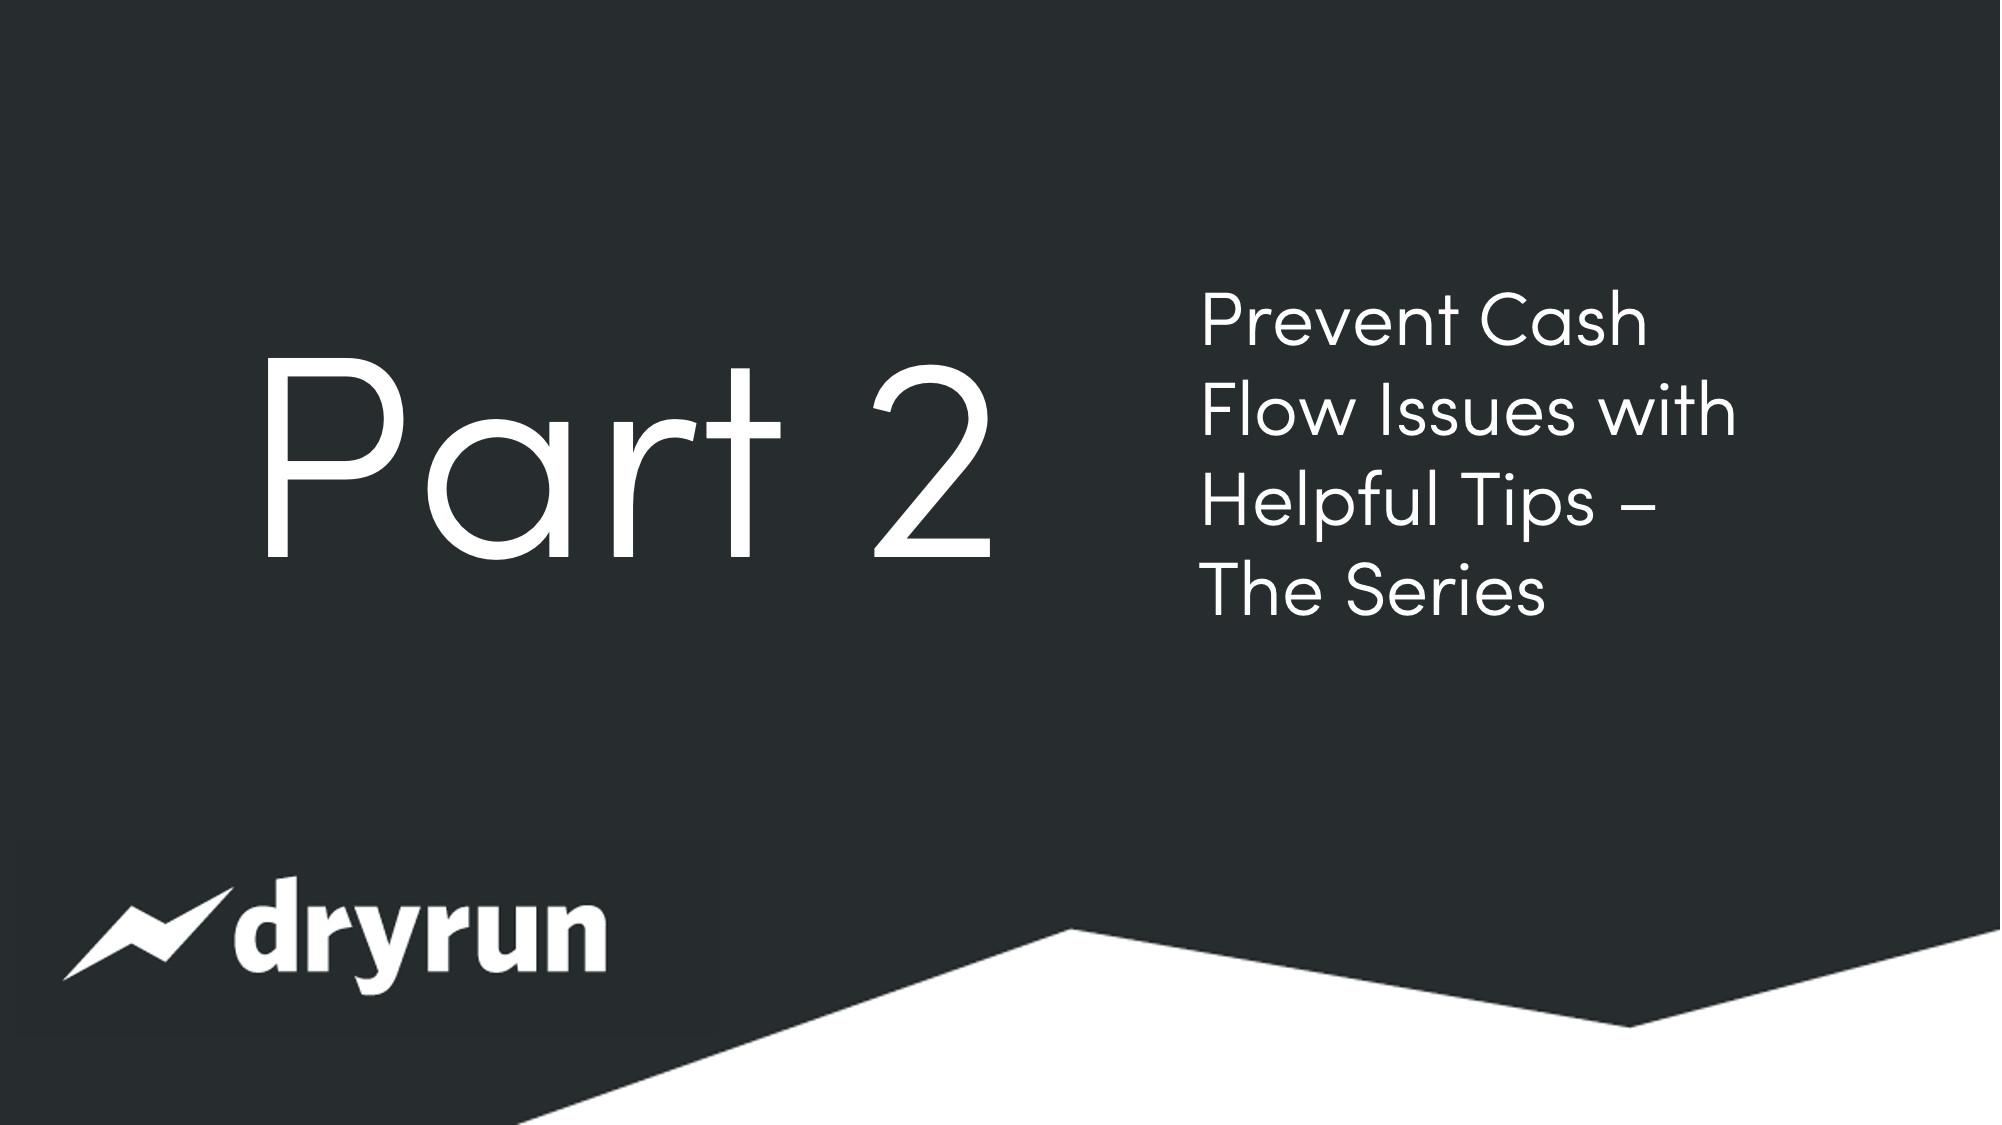 Prevent Cash Flow Issues with Helpful Tips - Part 2